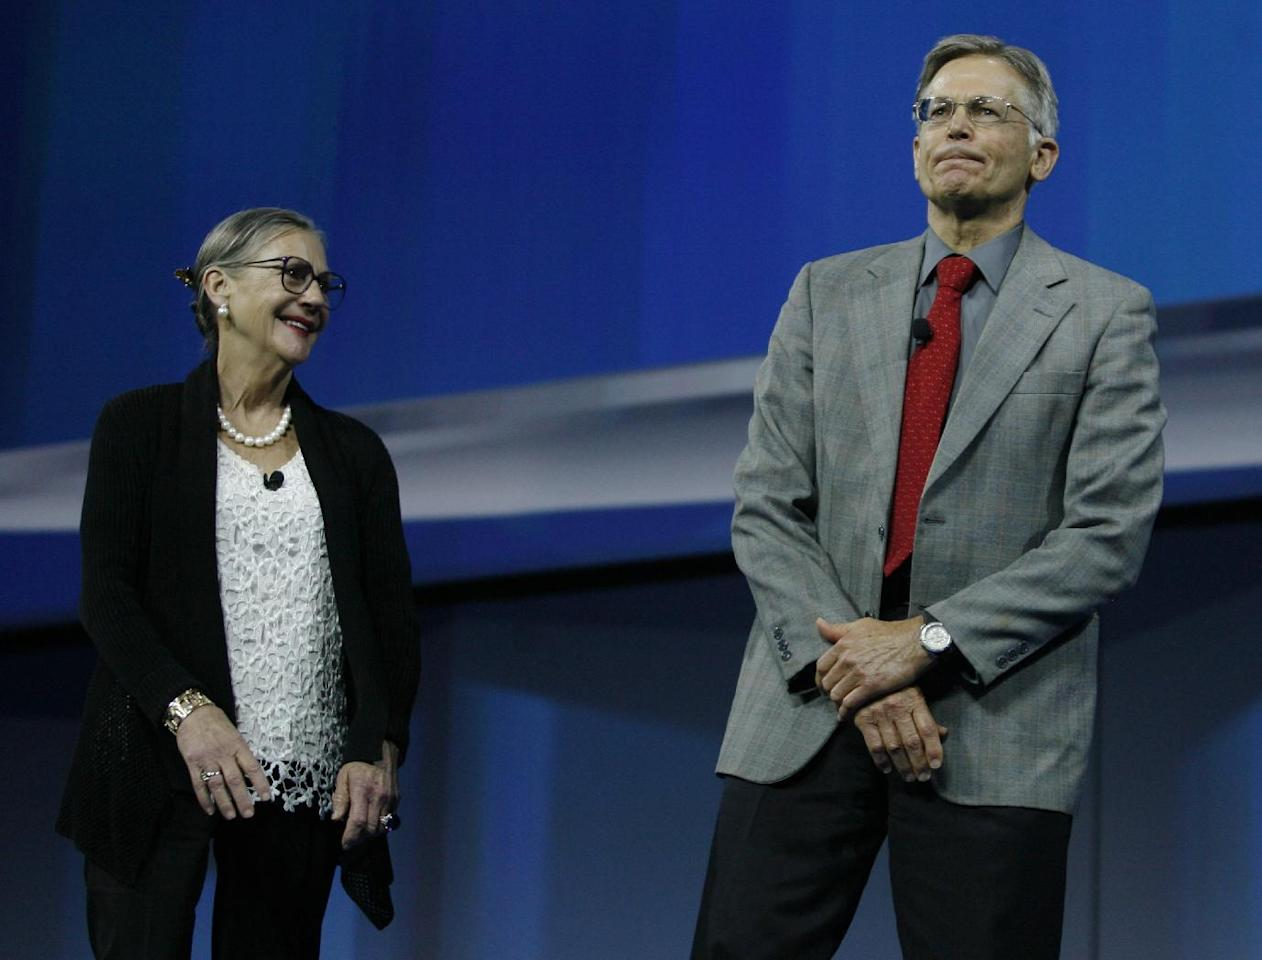 Alice Walton, left, and Arvest Bank Chairman Jim Walton, right, speak to a crowd of shareholders from around the world during the Wal-Mart shareholders meeting in Fayetteville, Ark., Friday, June 7, 2013. (AP Photo/Gareth Patterson)